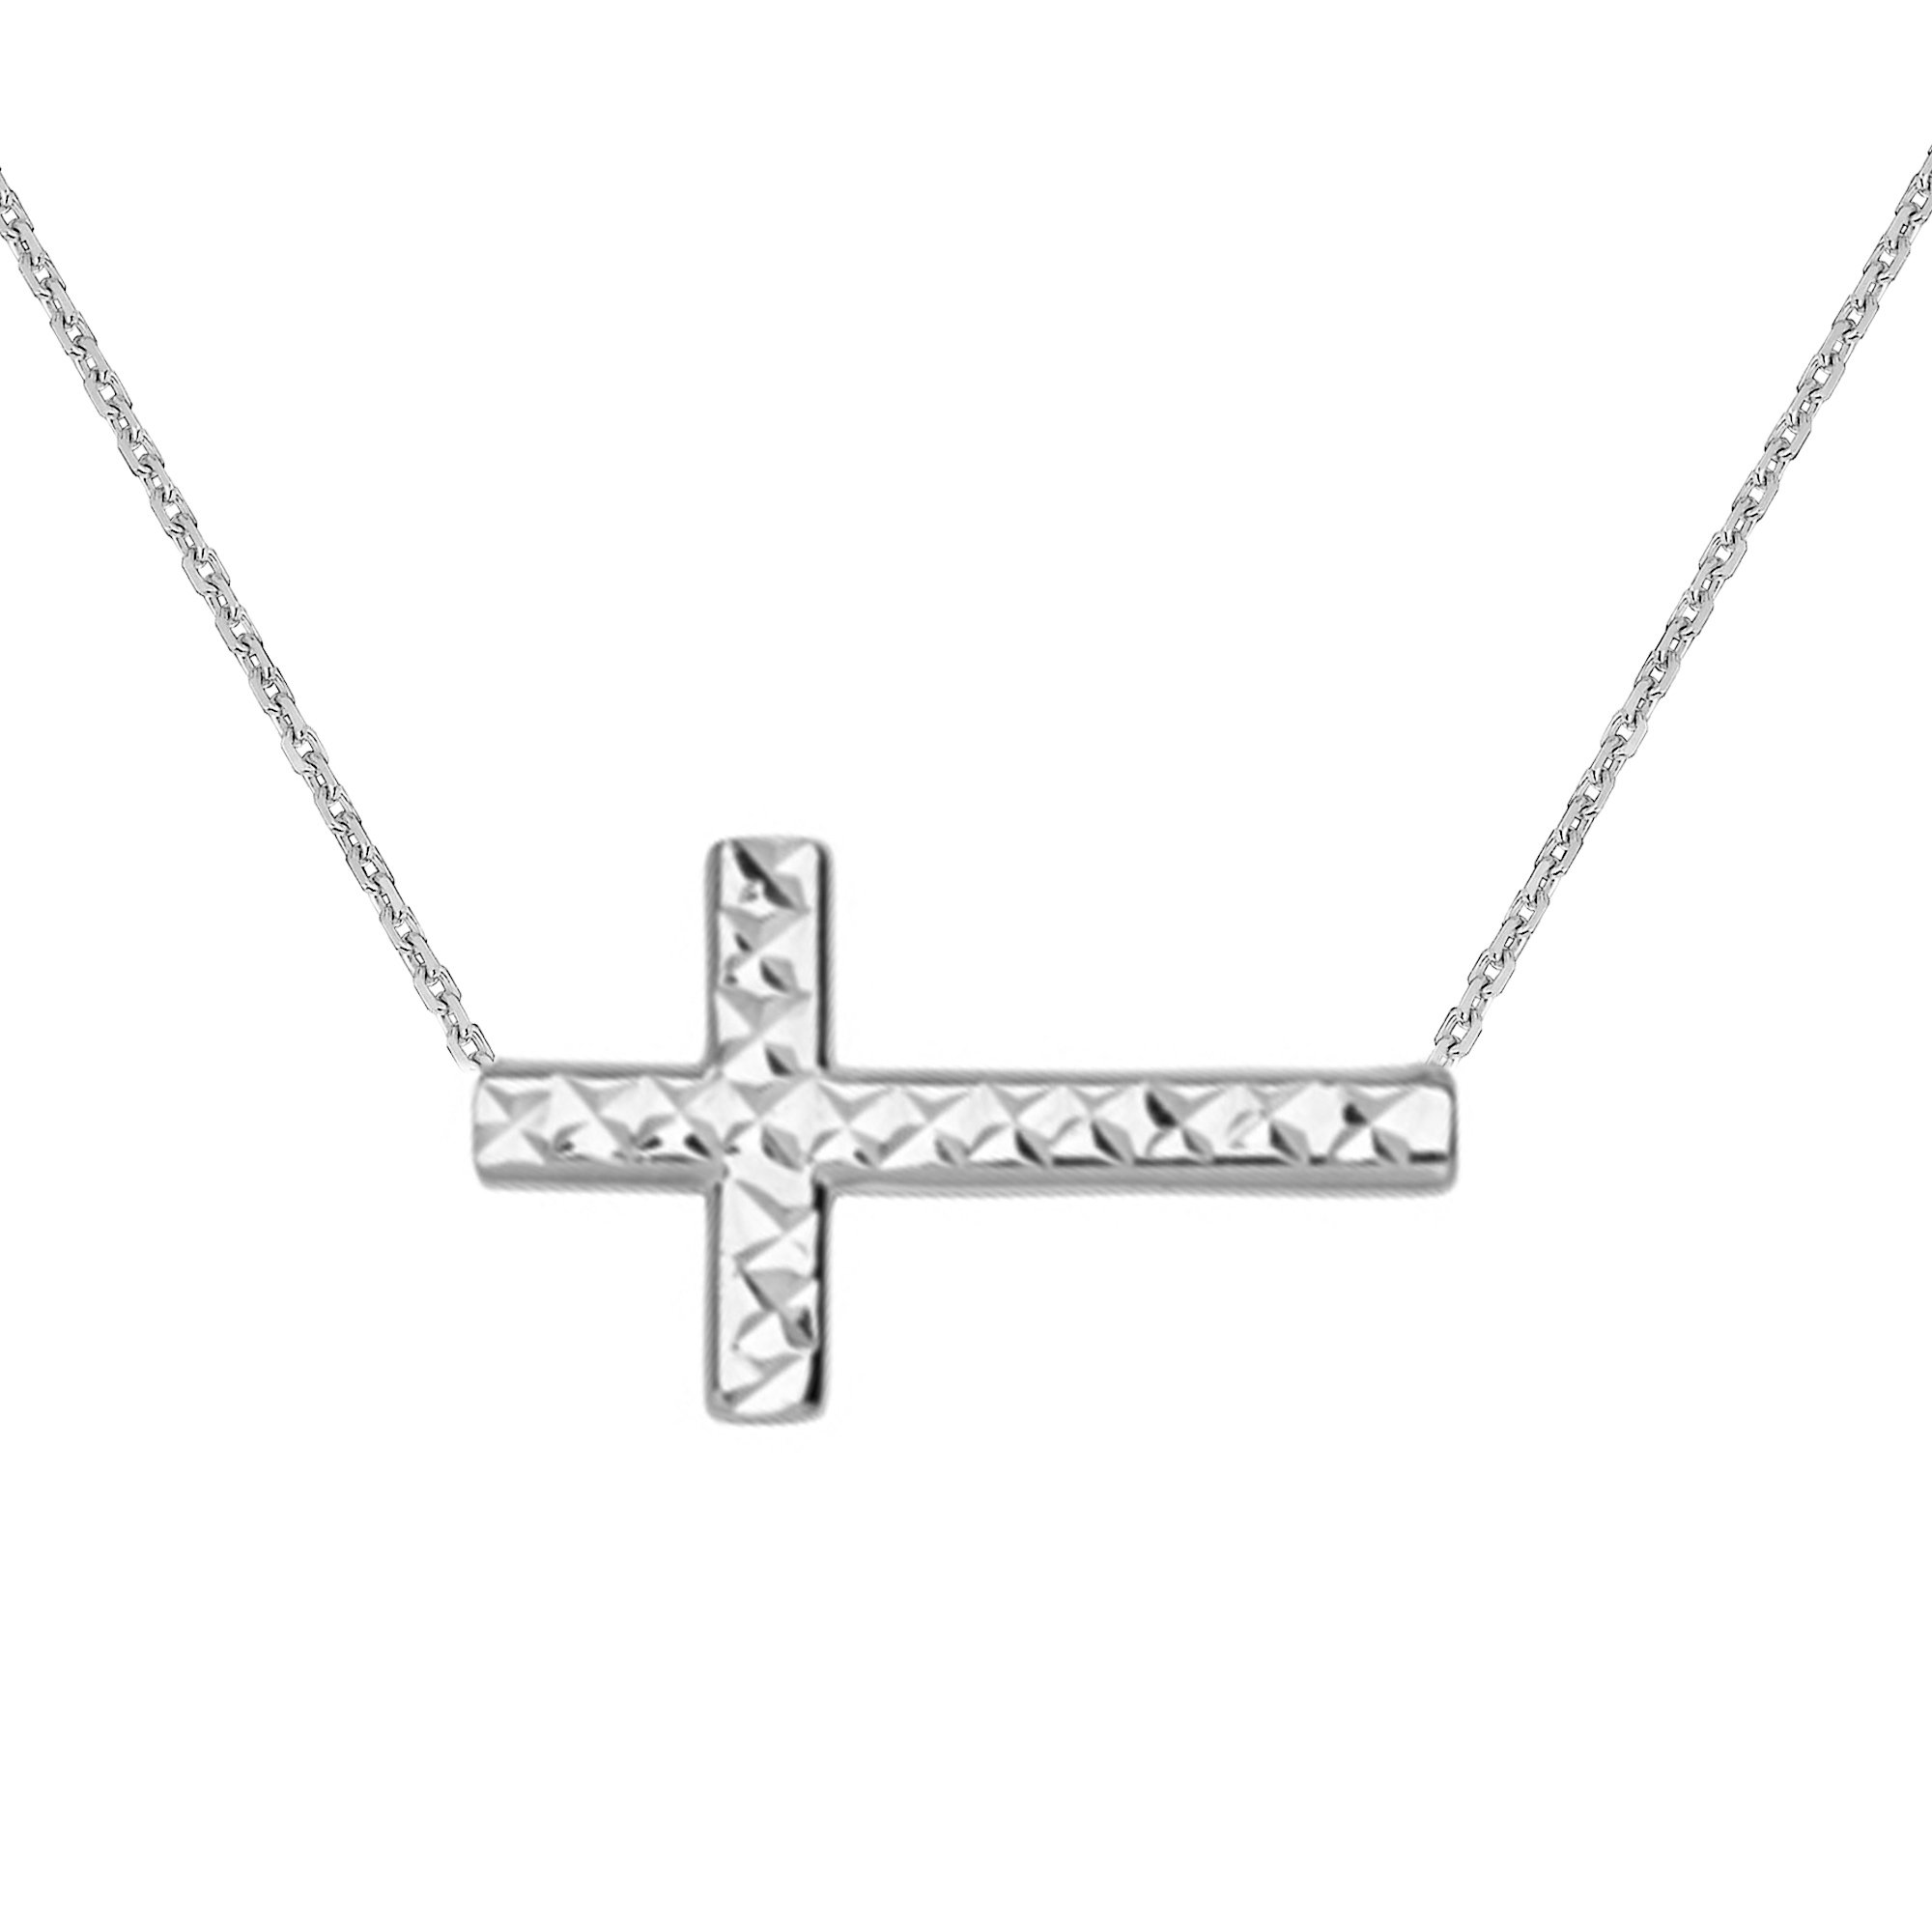 Ritastephens 14K White Gold Sideways Reversible Shiny Diamond-cut Cross Necklace Adjustable Chain 16-18 Inches (Yellow, Pink, or White)